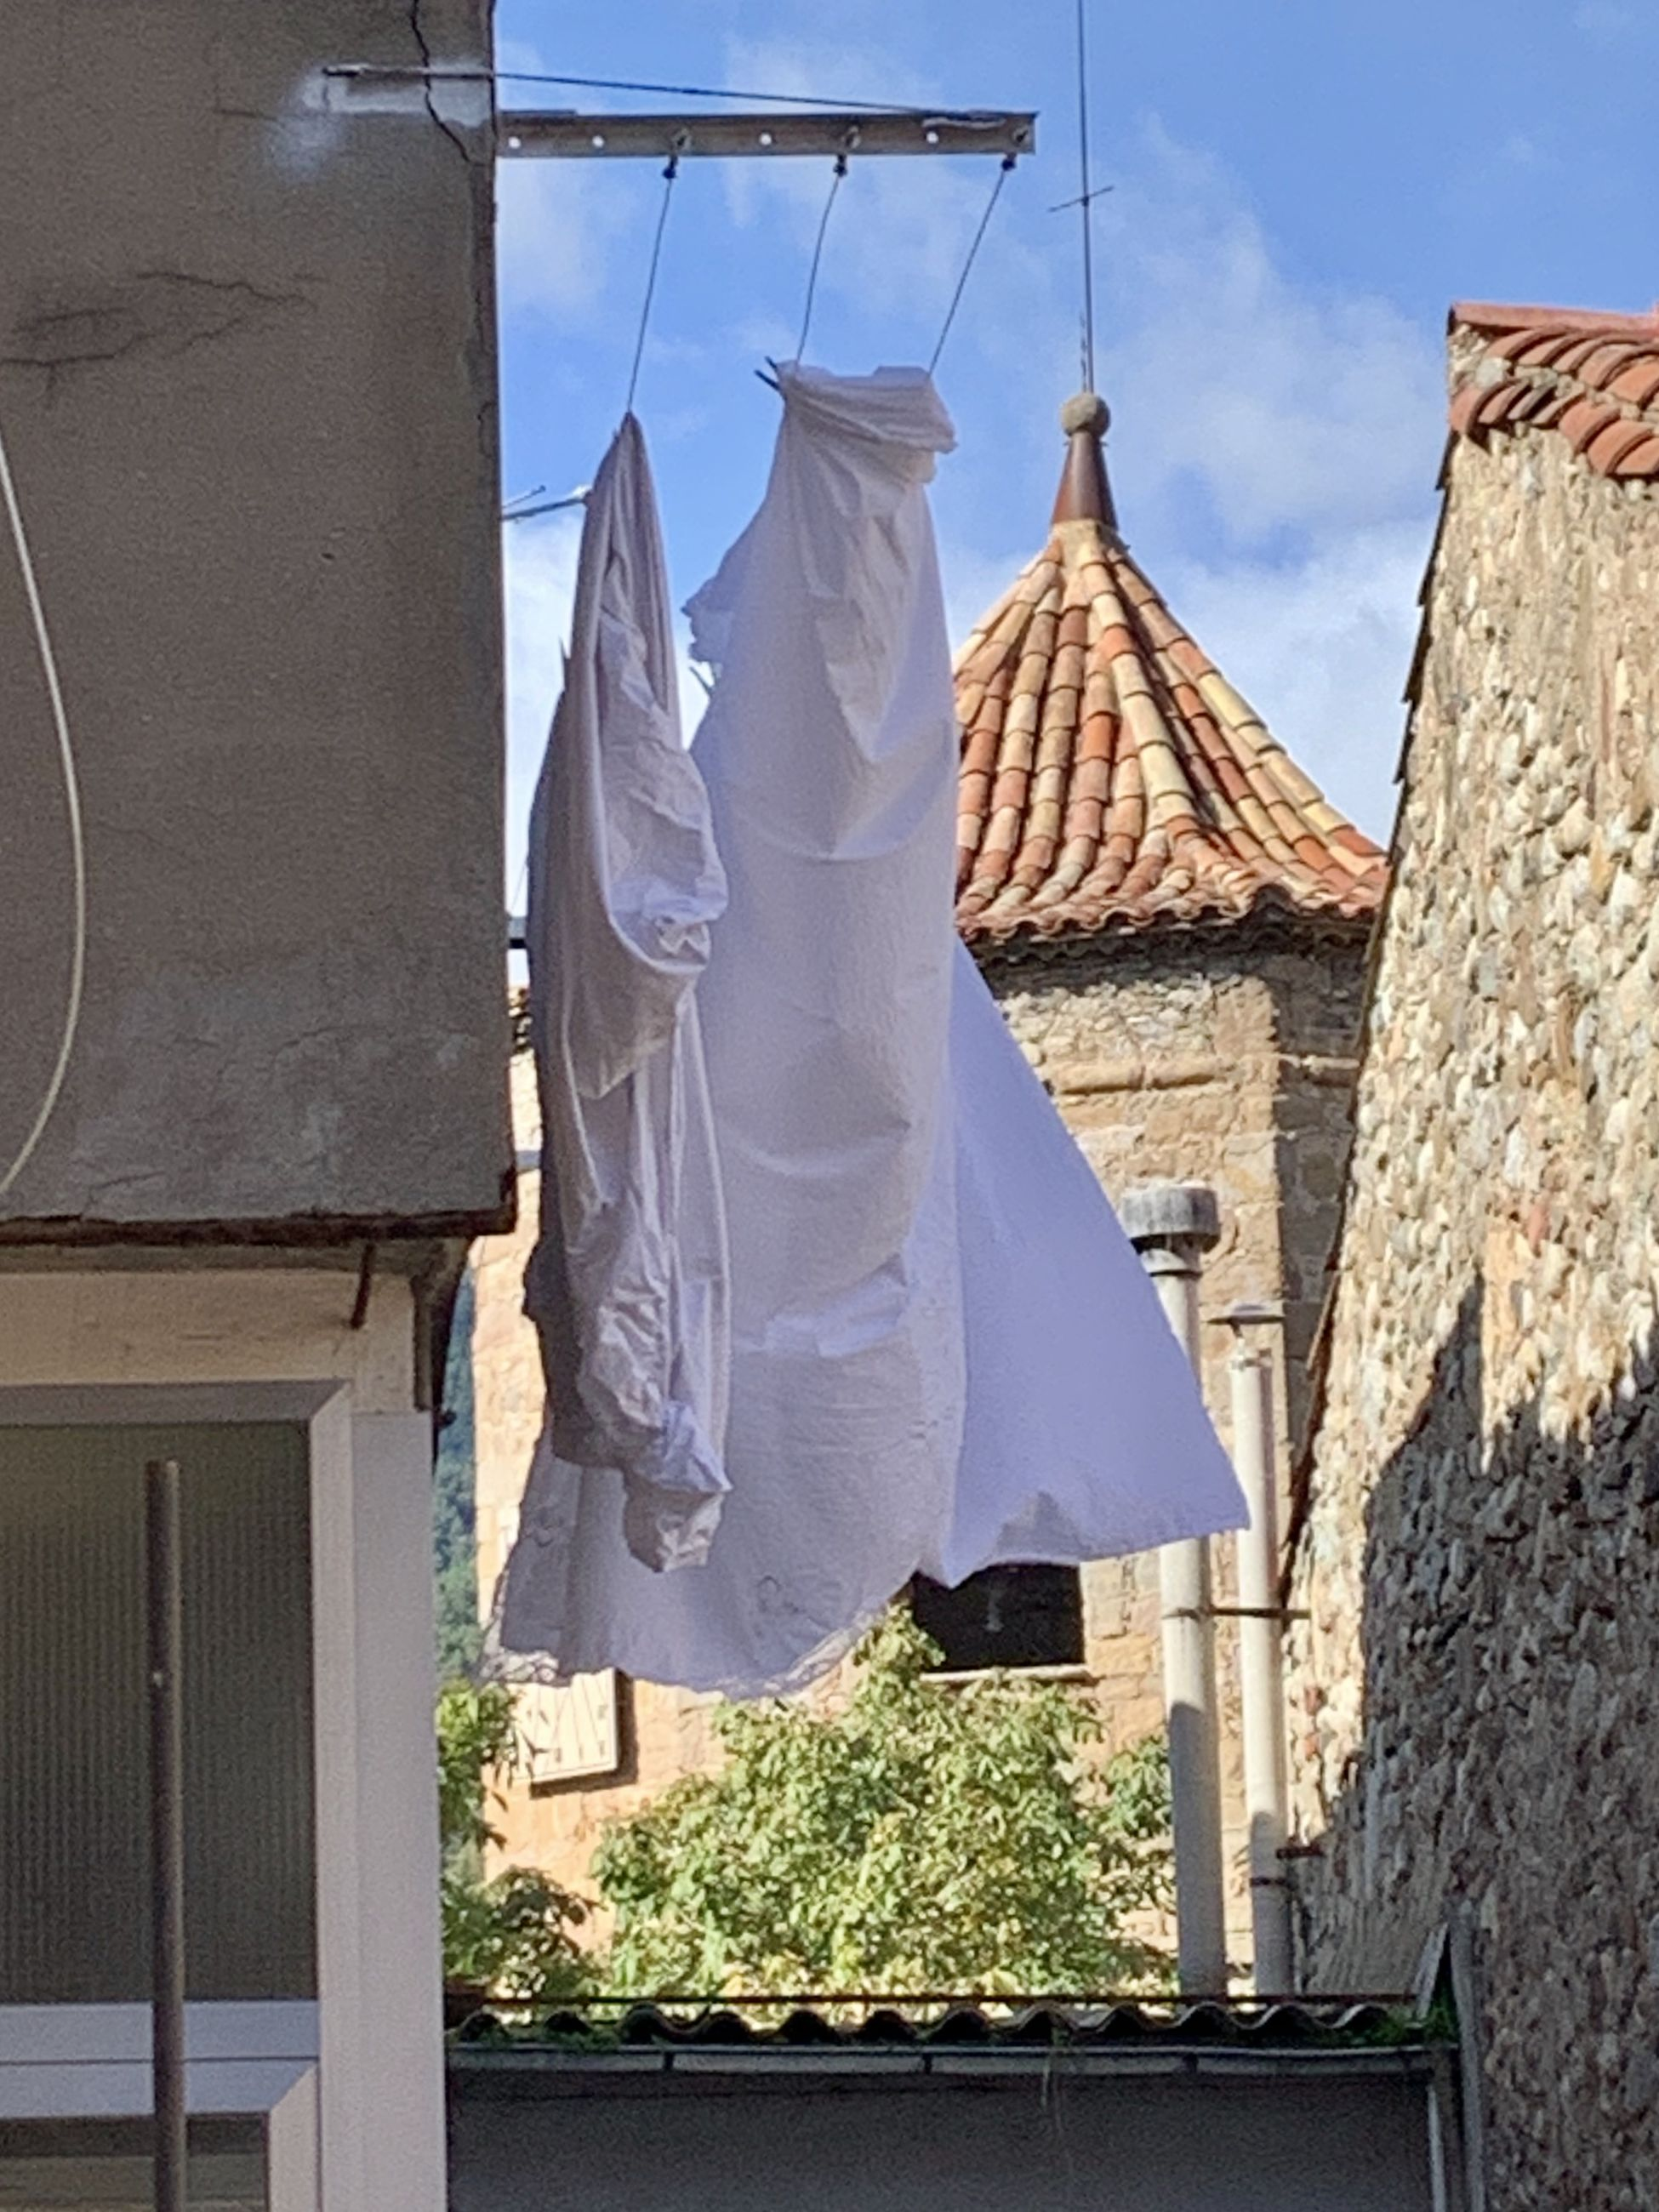 LOW ANGLE VIEW OF CLOTHES DRYING ON CLOTHESLINE AGAINST BUILDING